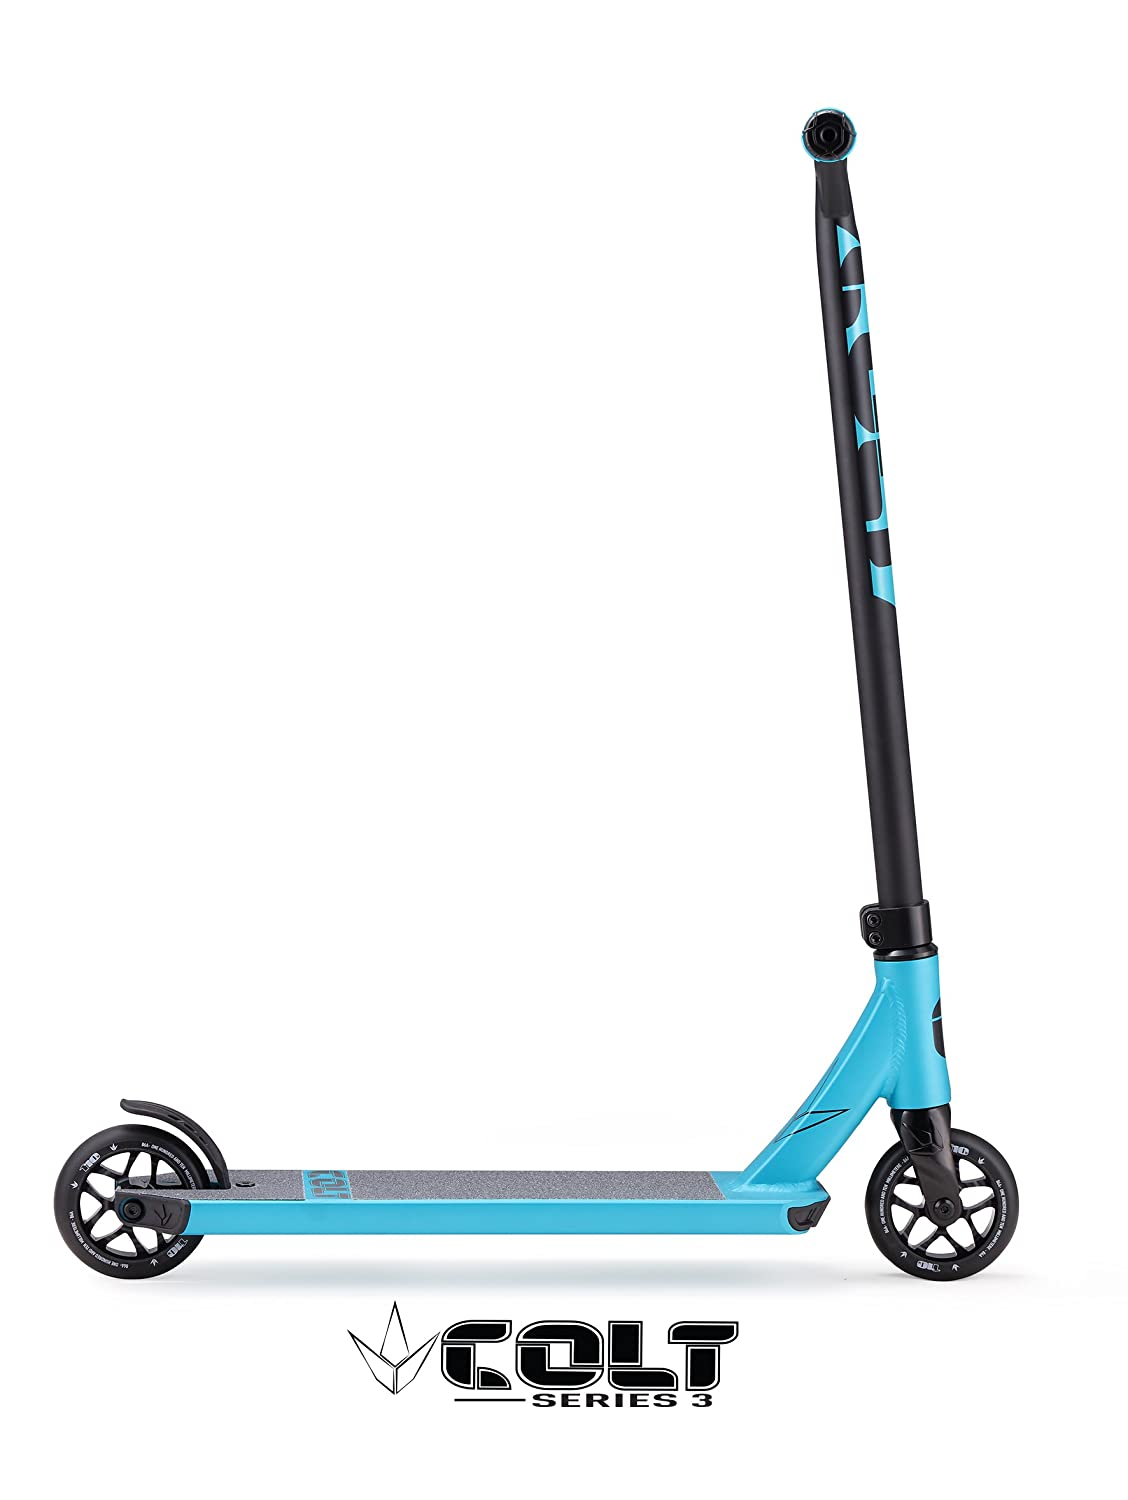 Amazon.com: Envy Serie 3 Colt Scooter (azul): Sports & Outdoors